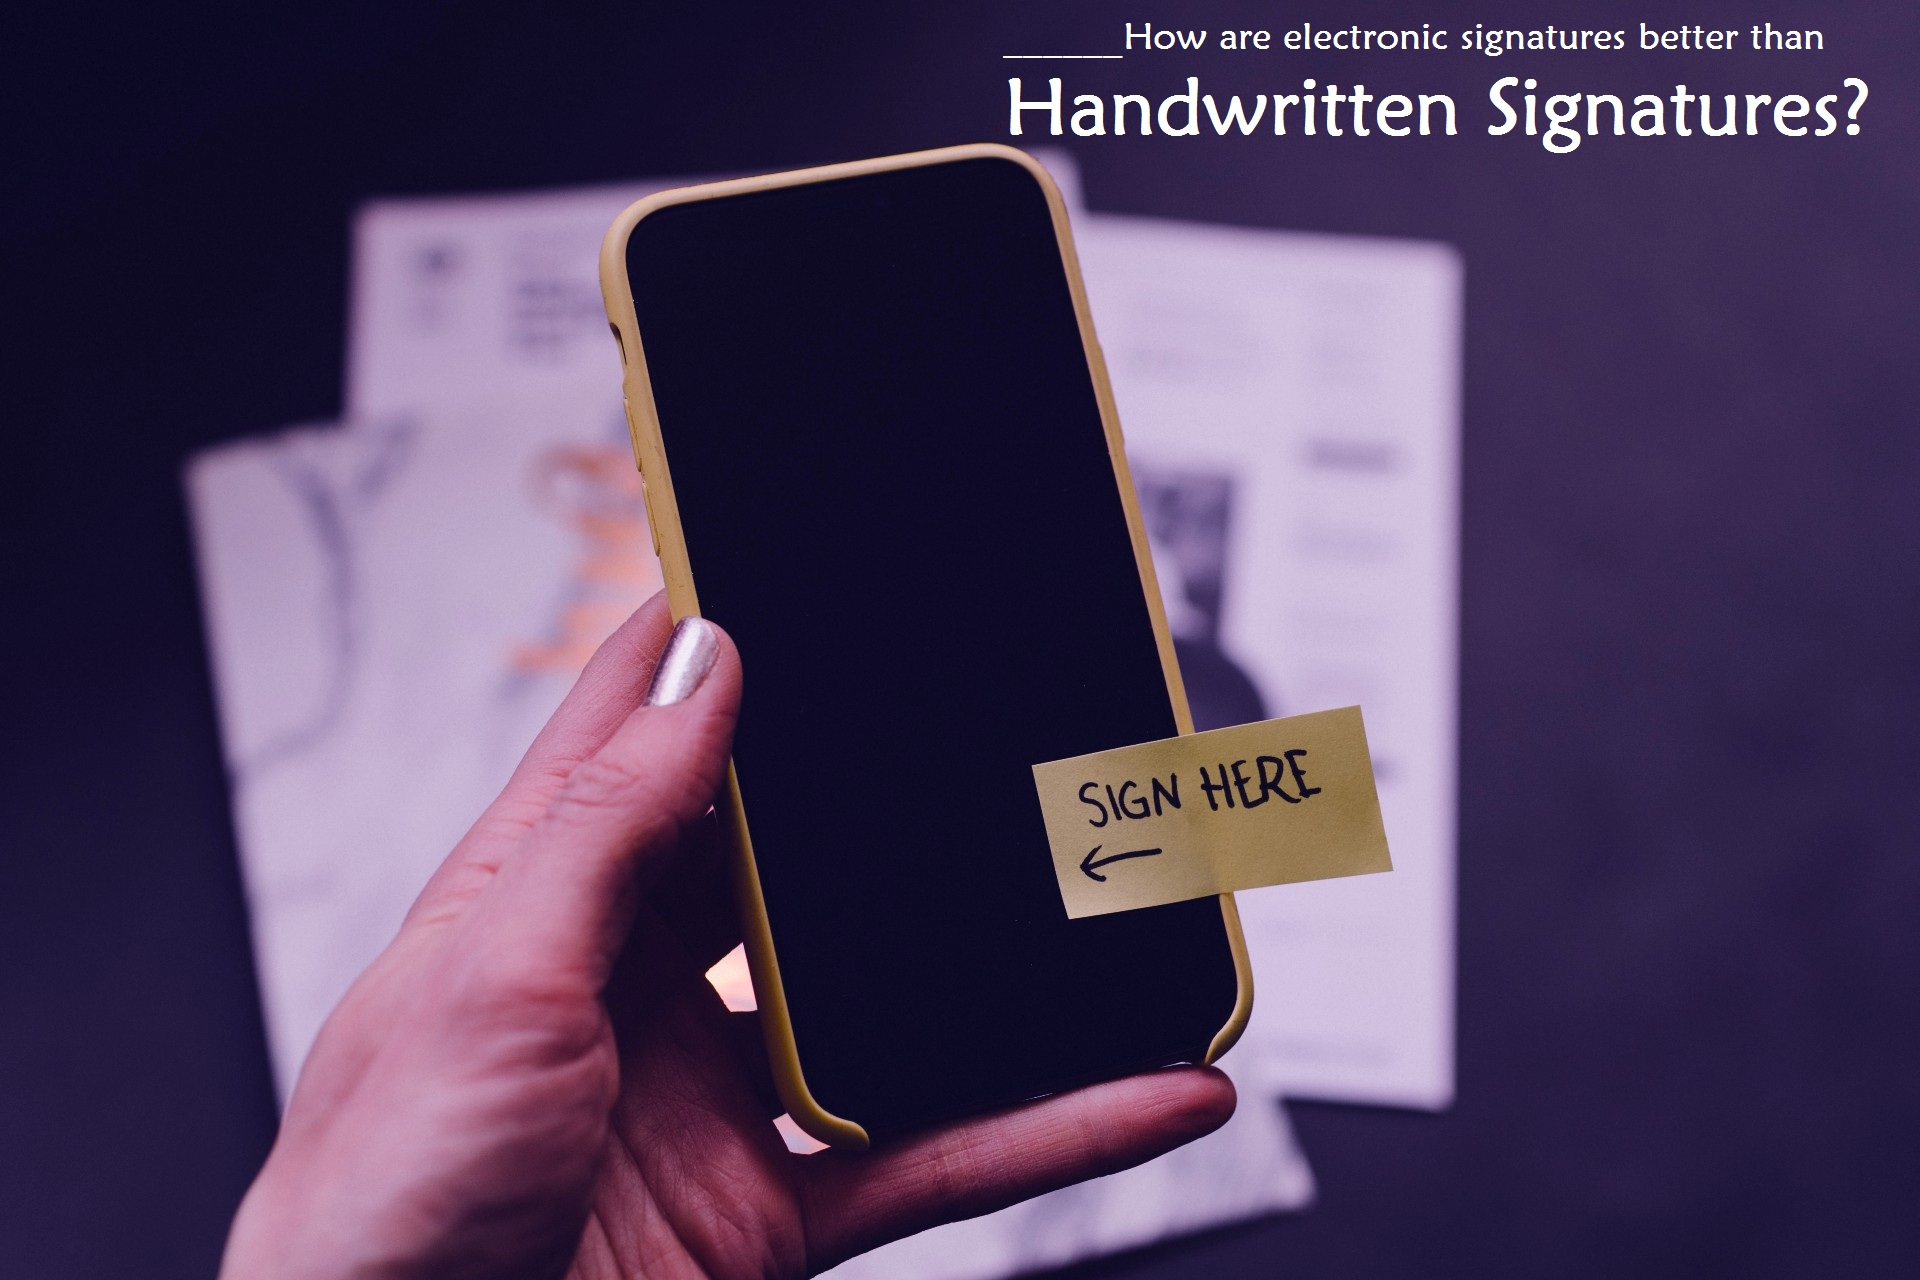 How are electronic signatures better than handwritten signatures?